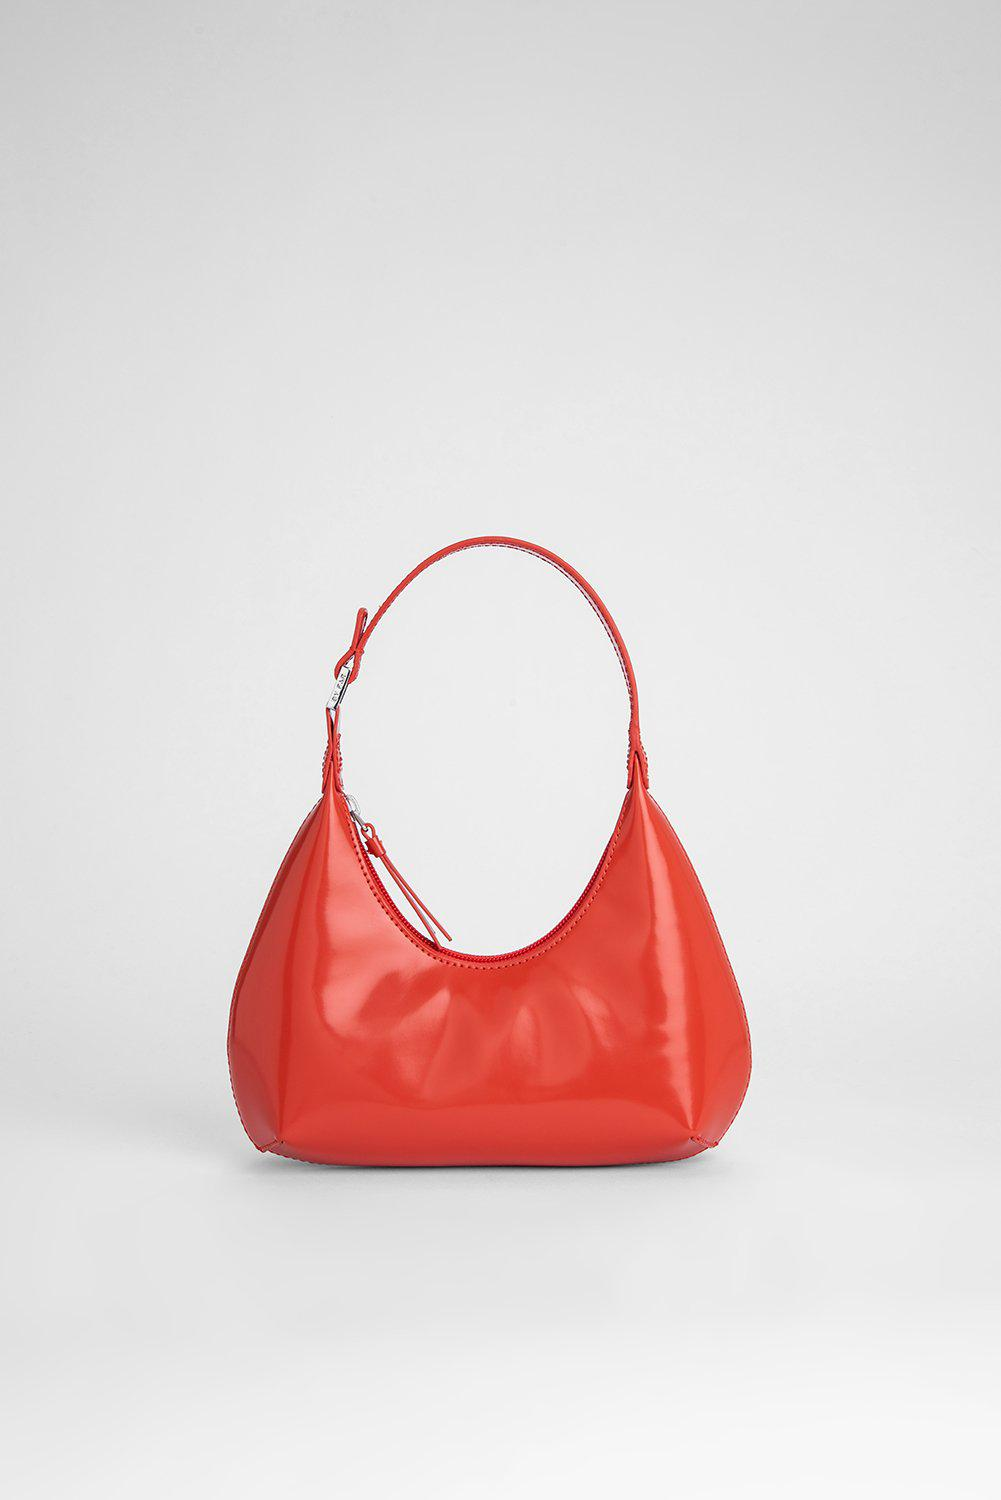 Baby Amber Scarlet Semi Patent Leather